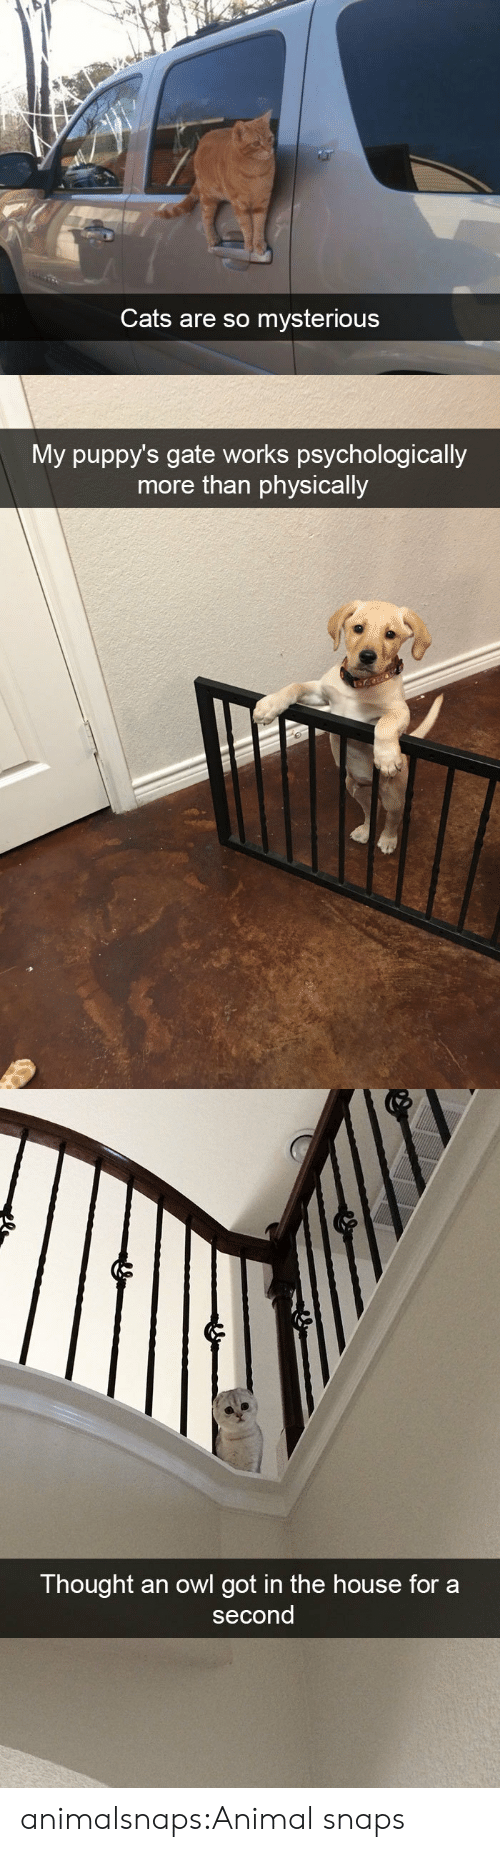 gate: Cats are so mysterious   My puppy's gate works psychologically  more than physically   Thought an owl got in the house for a  second animalsnaps:Animal snaps